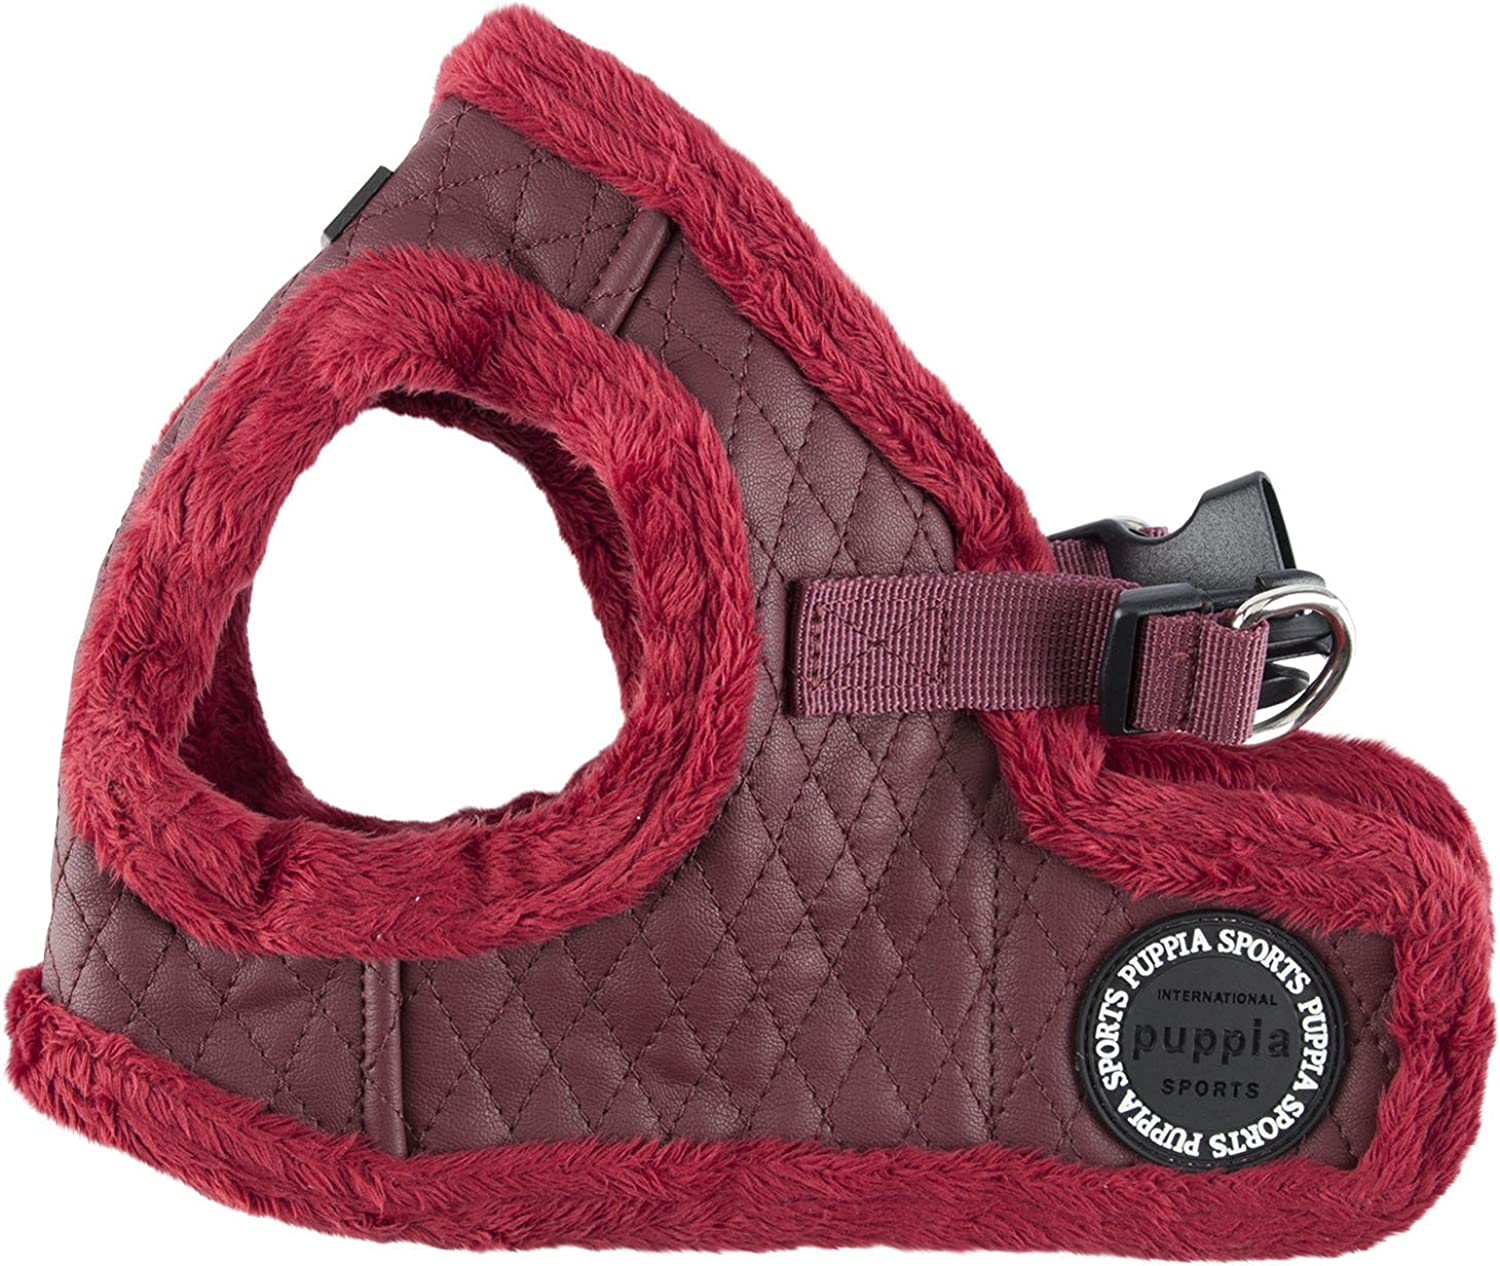 Puppia Authentic Farren Harness B, Large, Wine